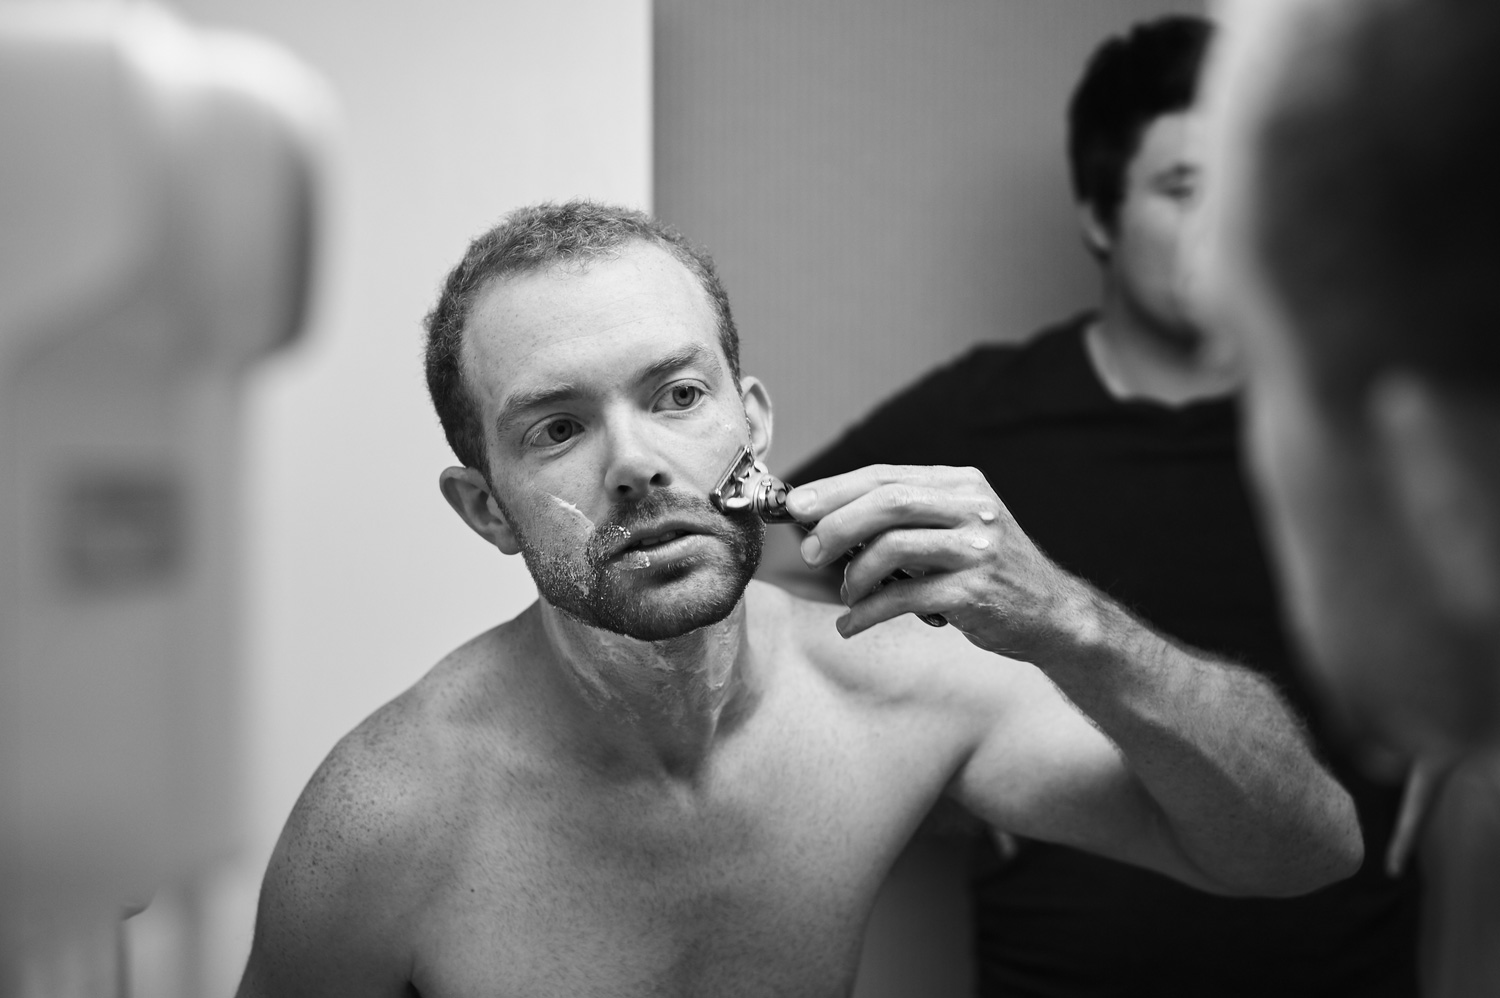 groom-shaving-and-getting-ready-black-and-white.jpg